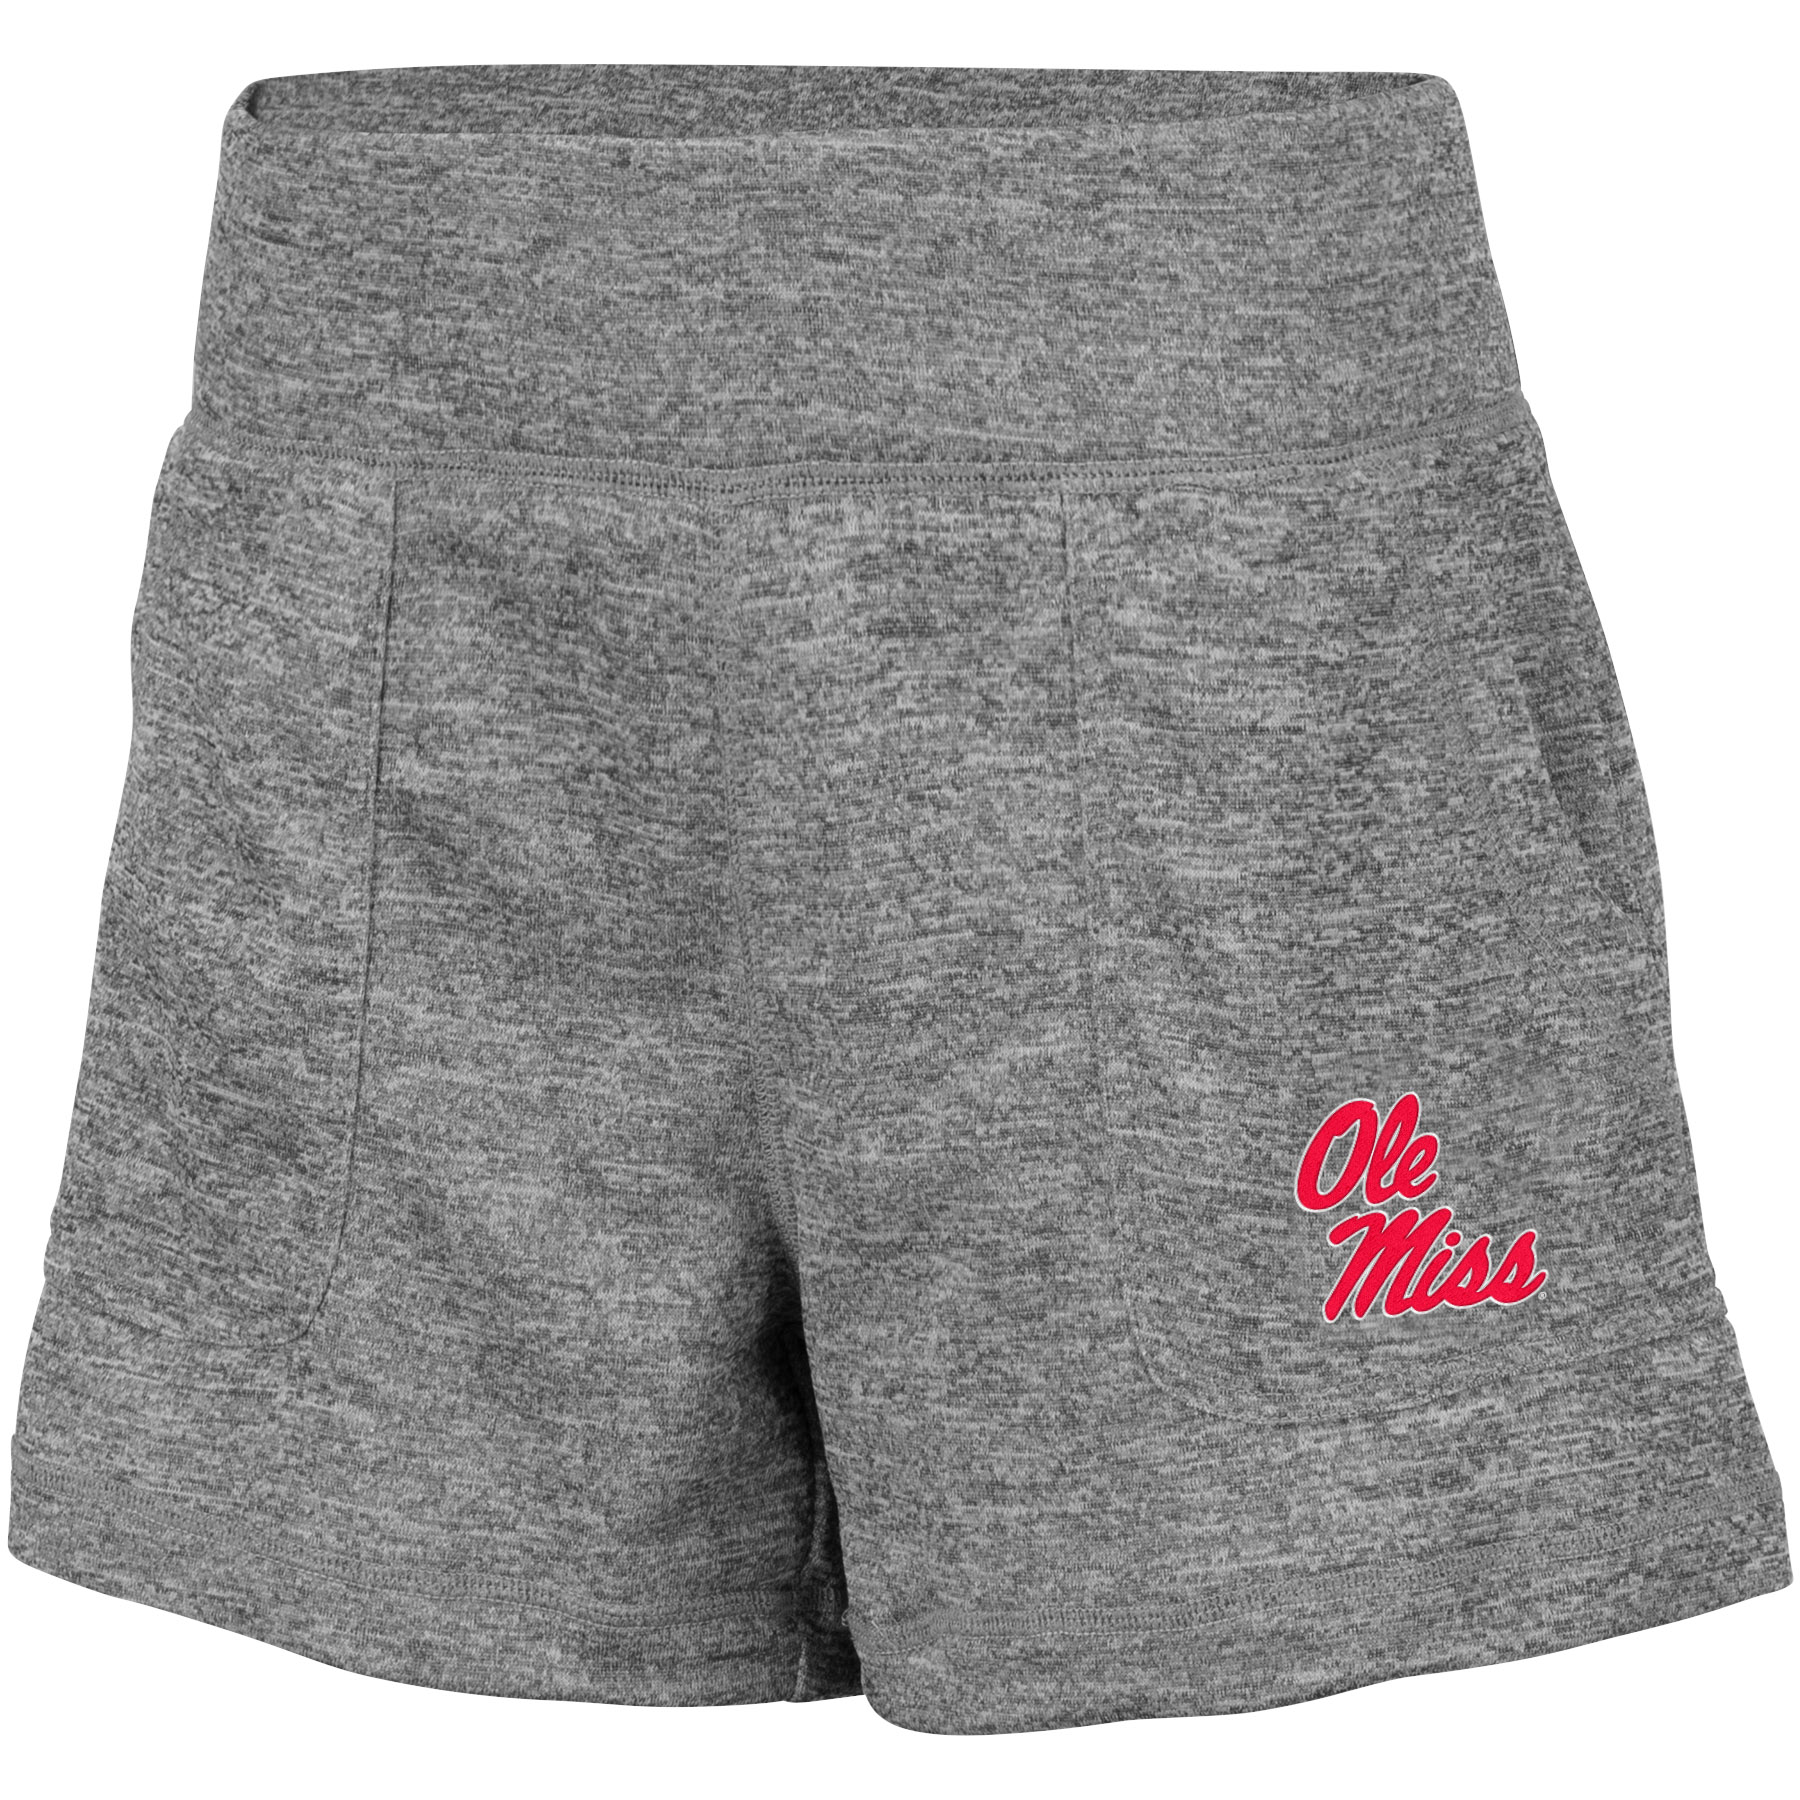 Womens Heather Gray Lyon Short